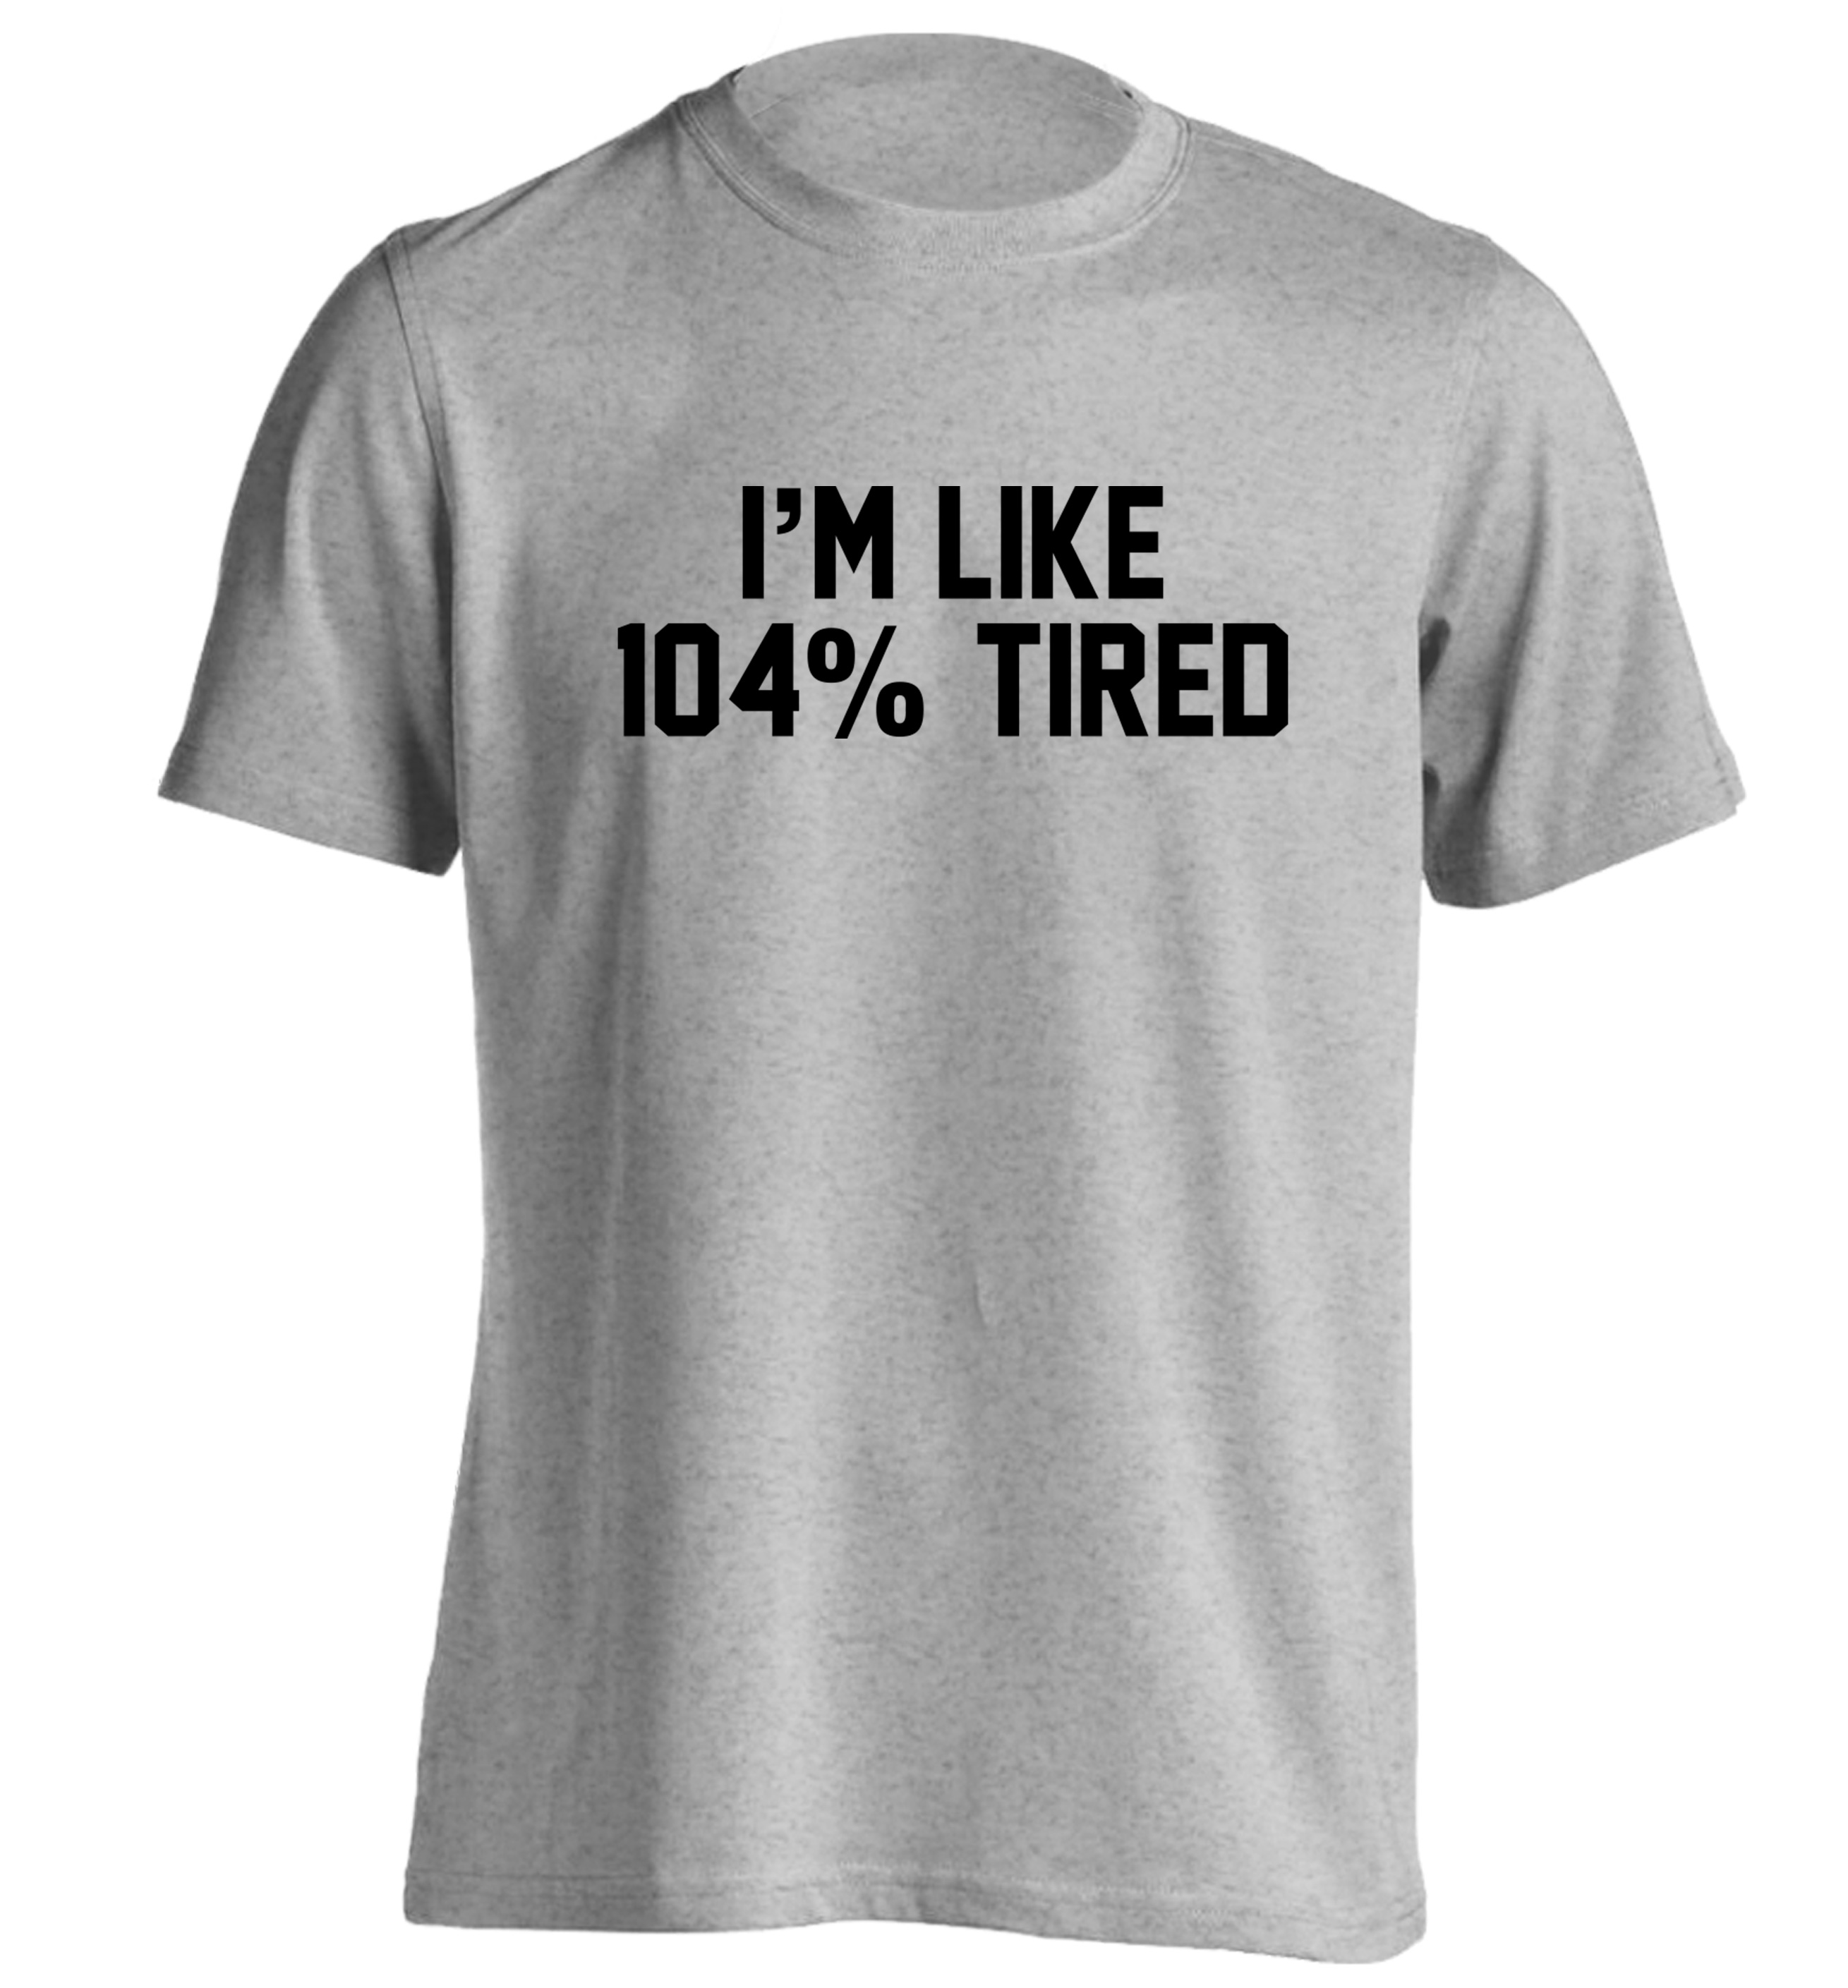 Funny Text T Shirts | Is Shirt